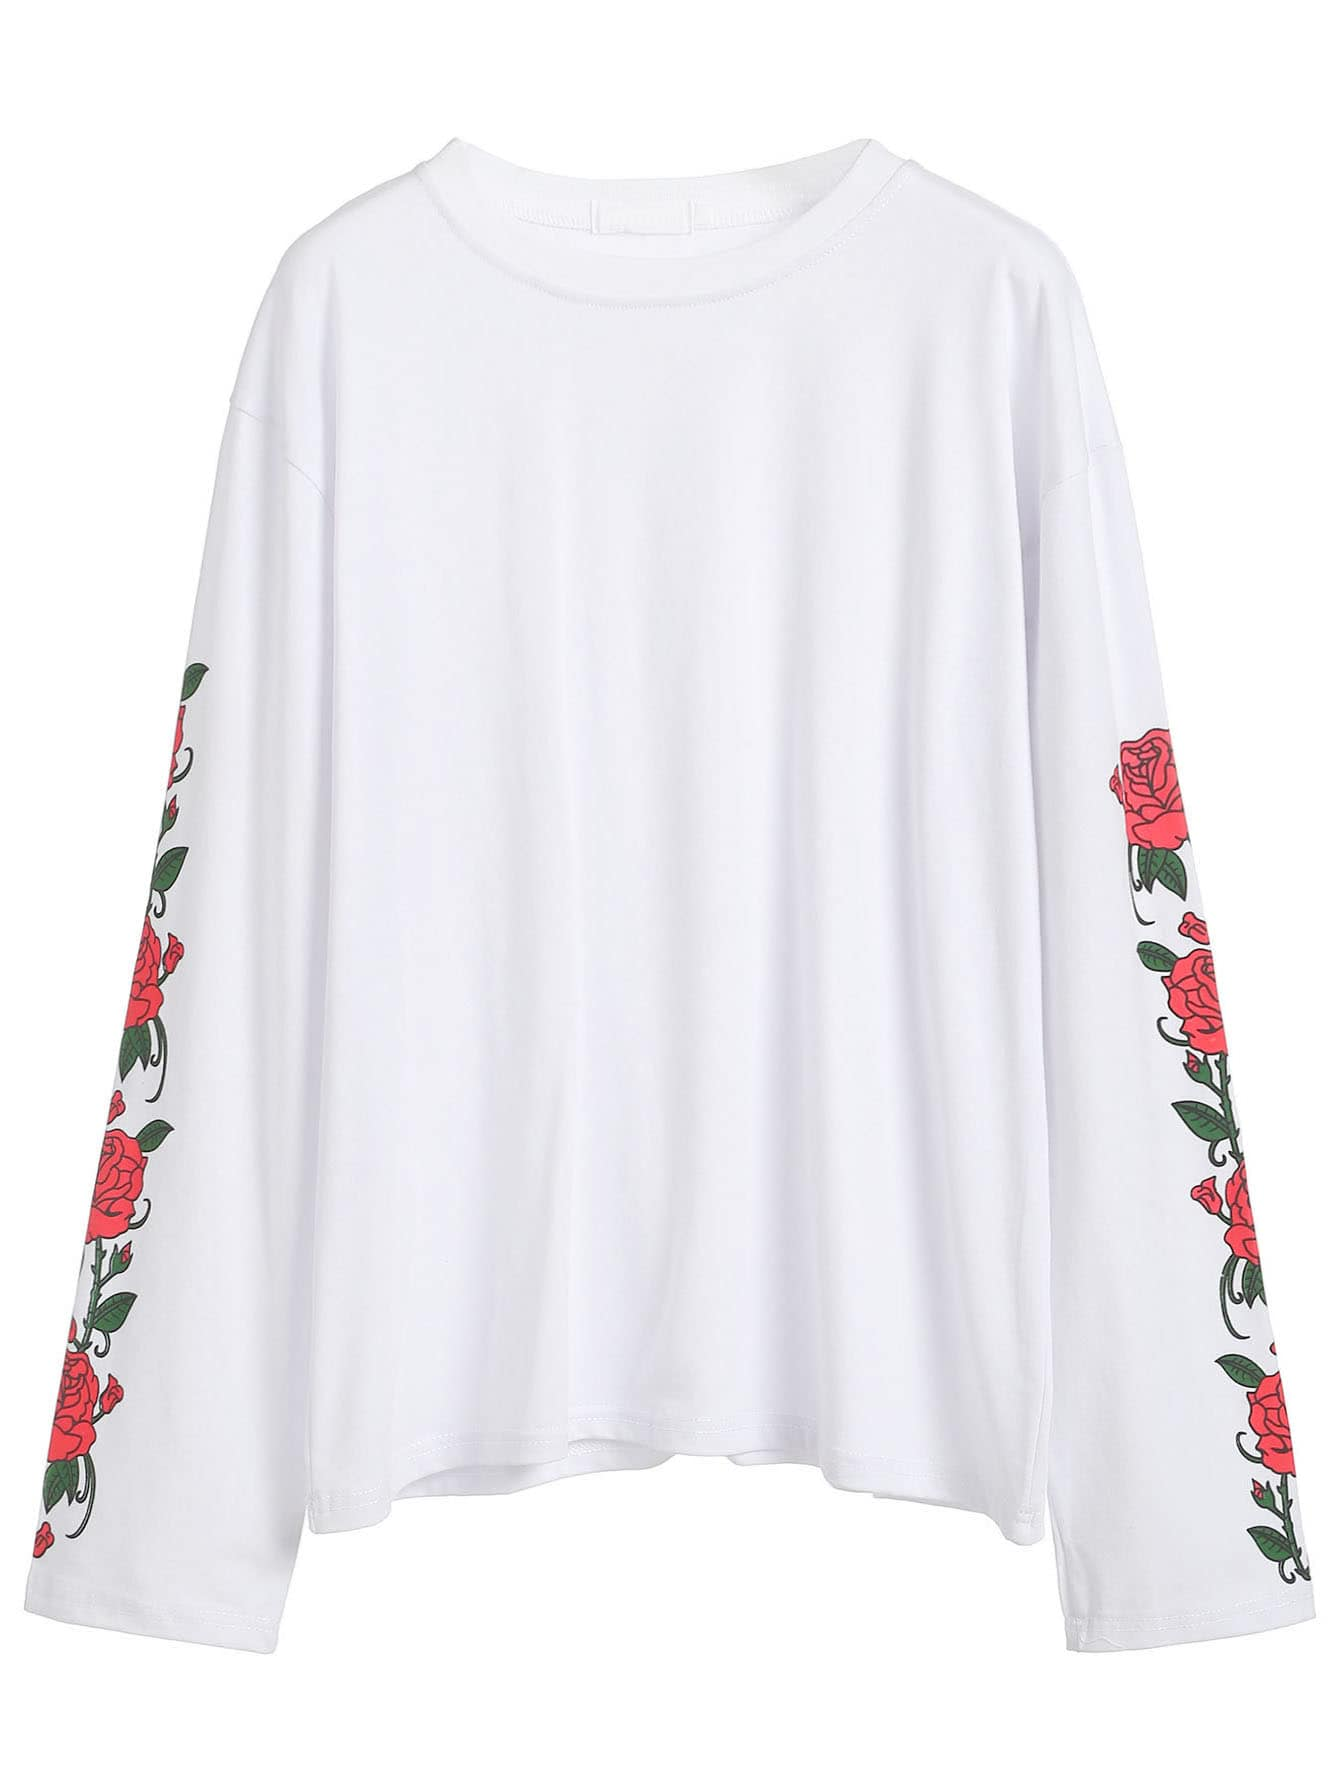 Rose Print Sleeve T-shirt -SheIn(Sheinside)